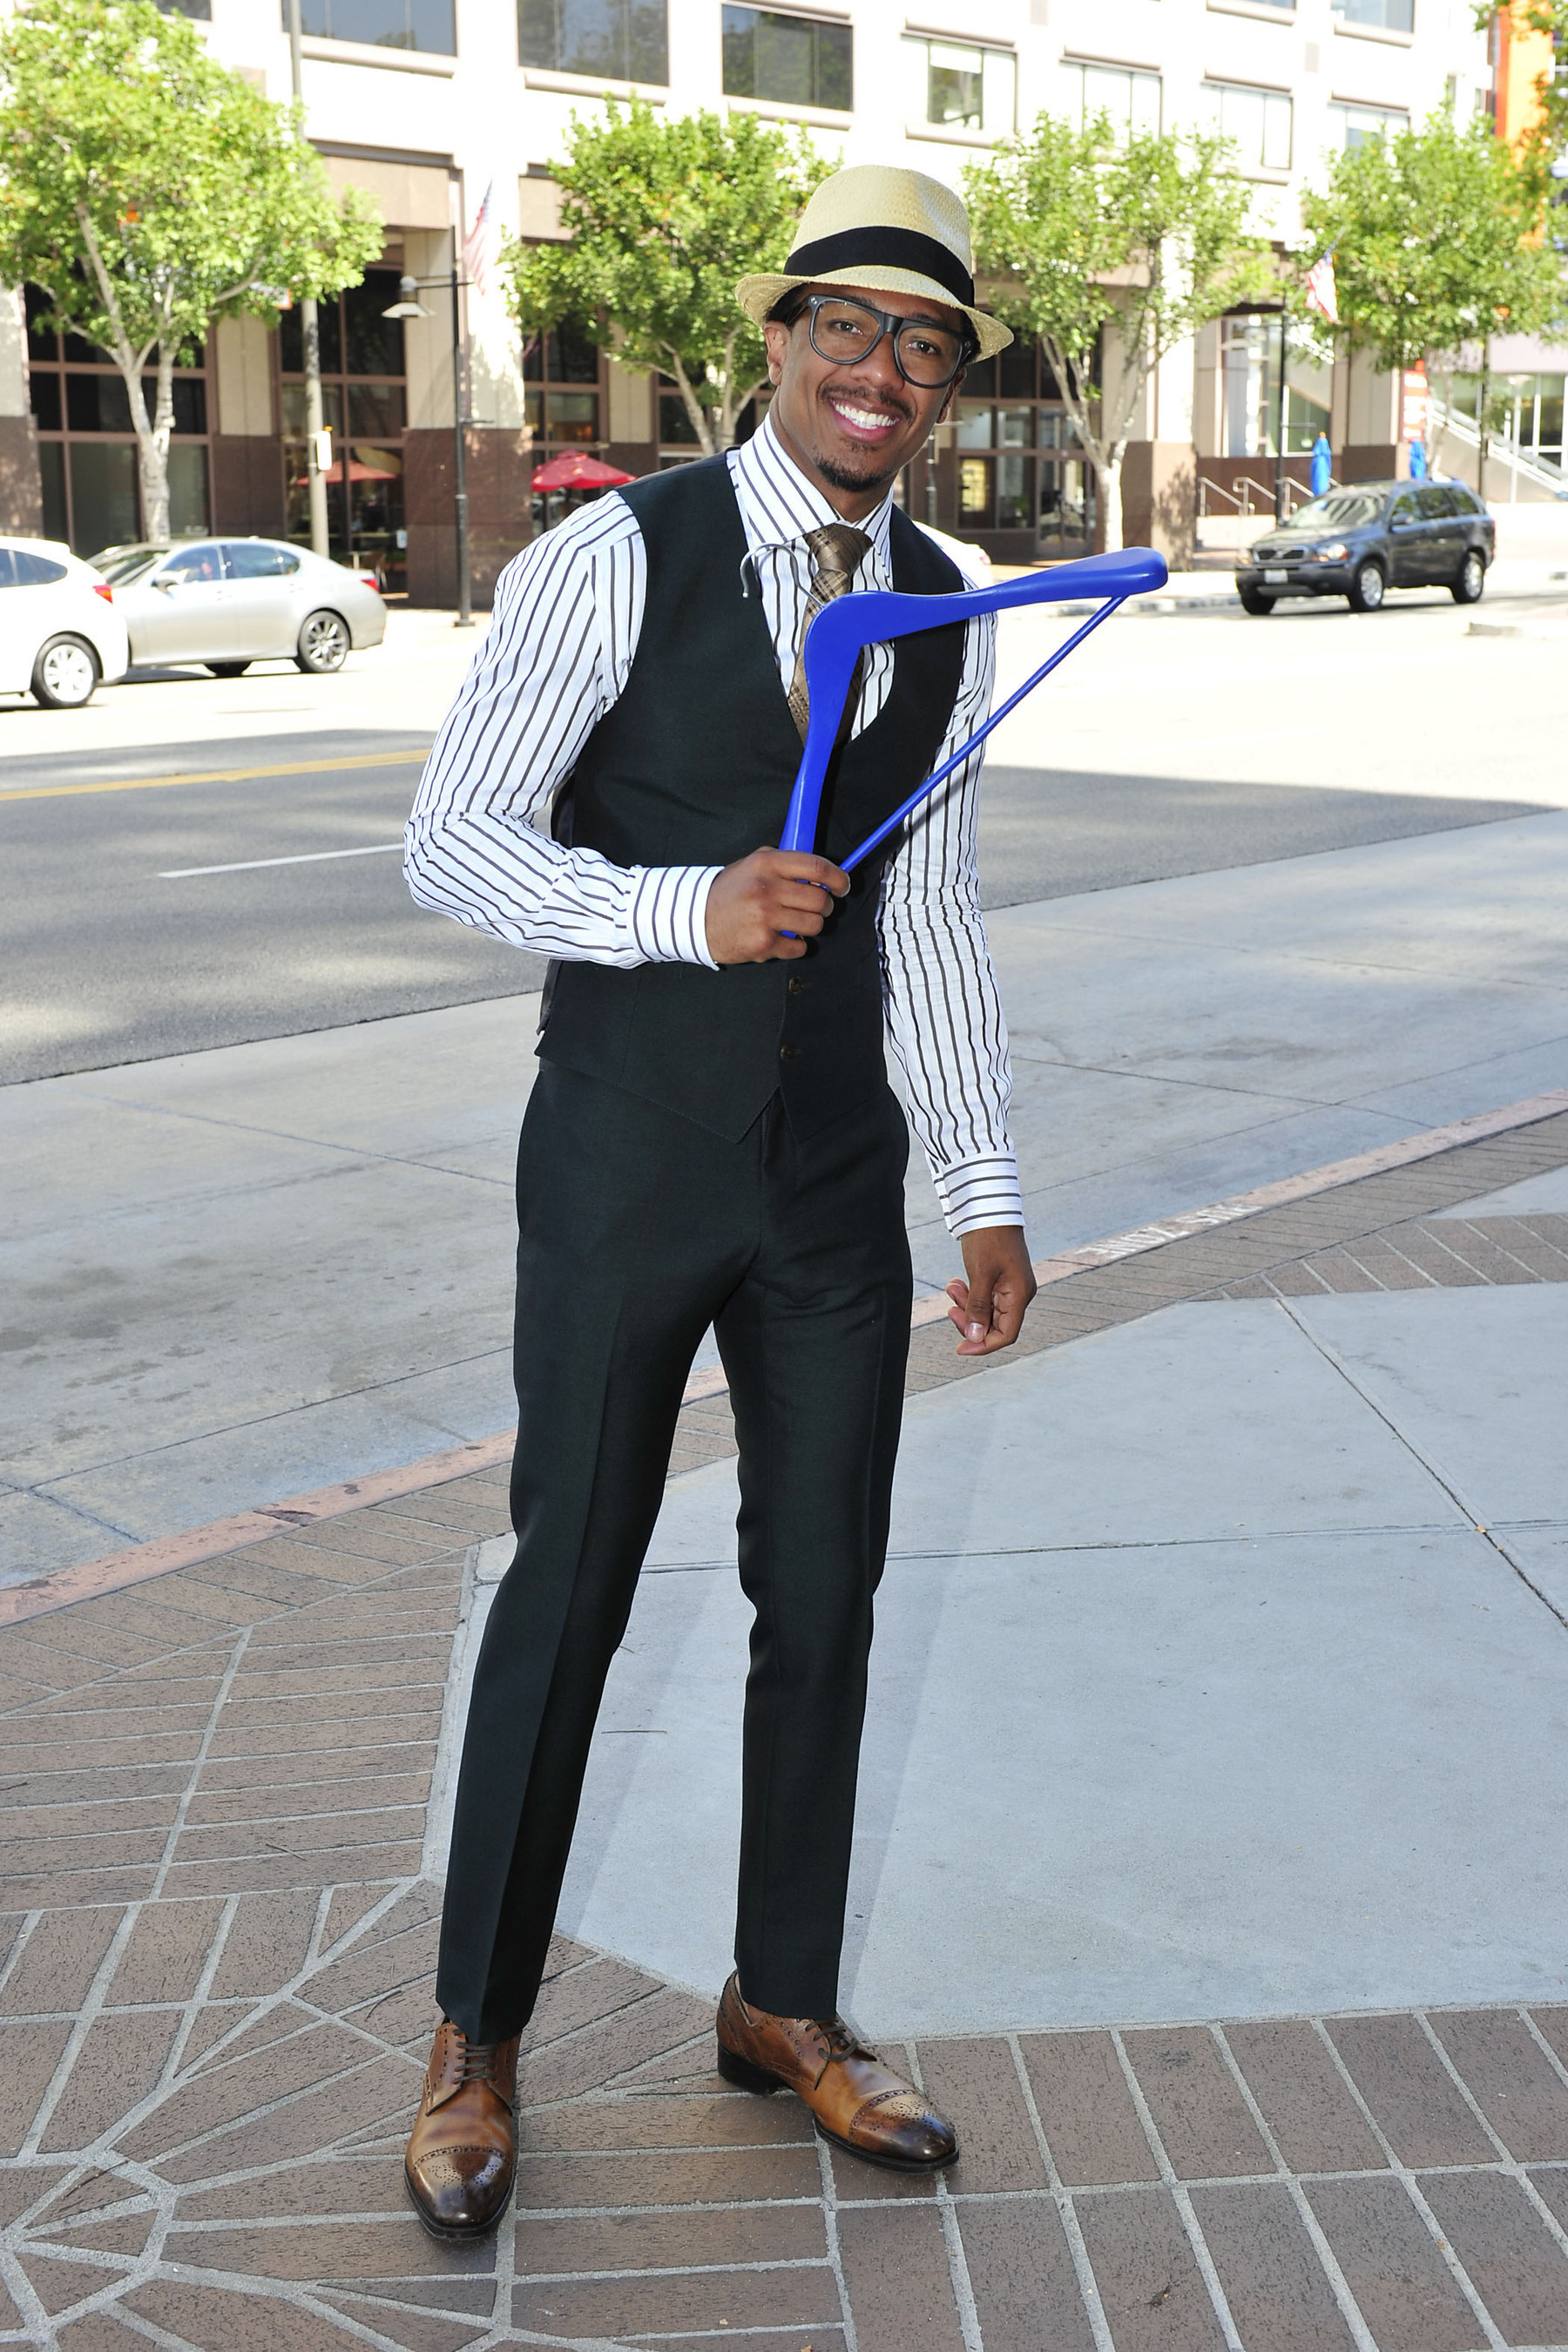 Moores Clothing For Men Partners With Nick Cannon To Launch The 7th Annual Canadian Suit Drive